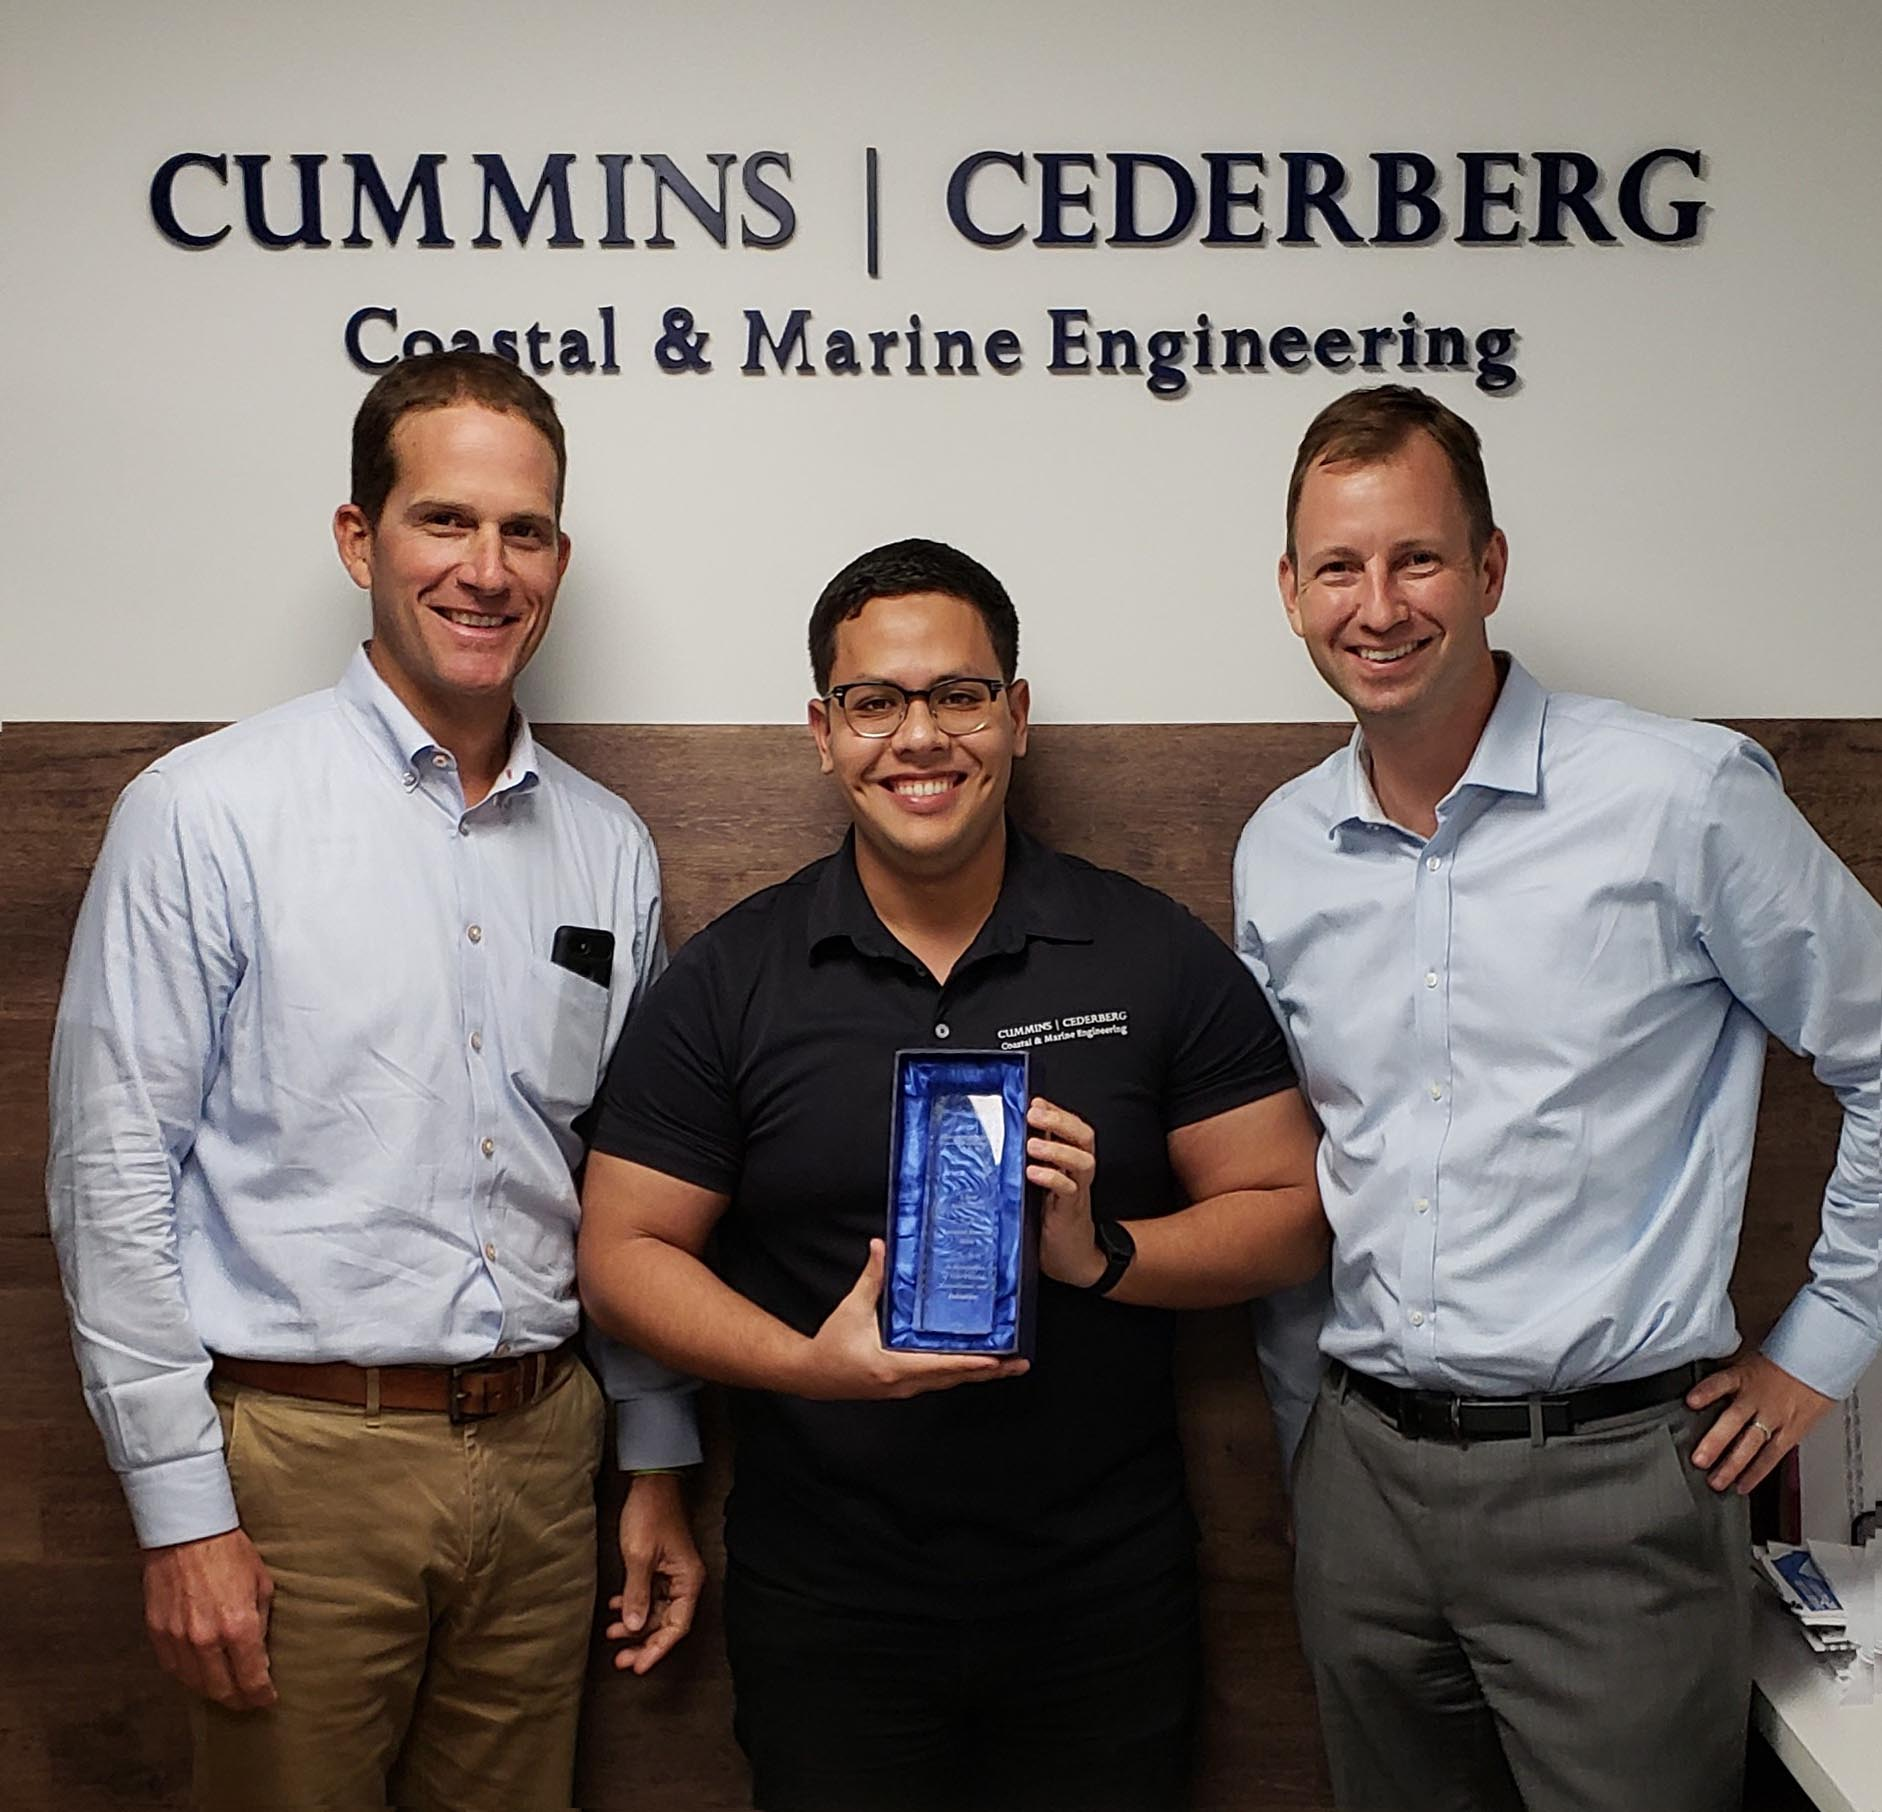 Leonard Barrera Celebrates 5 Years at Cummins Cederberg